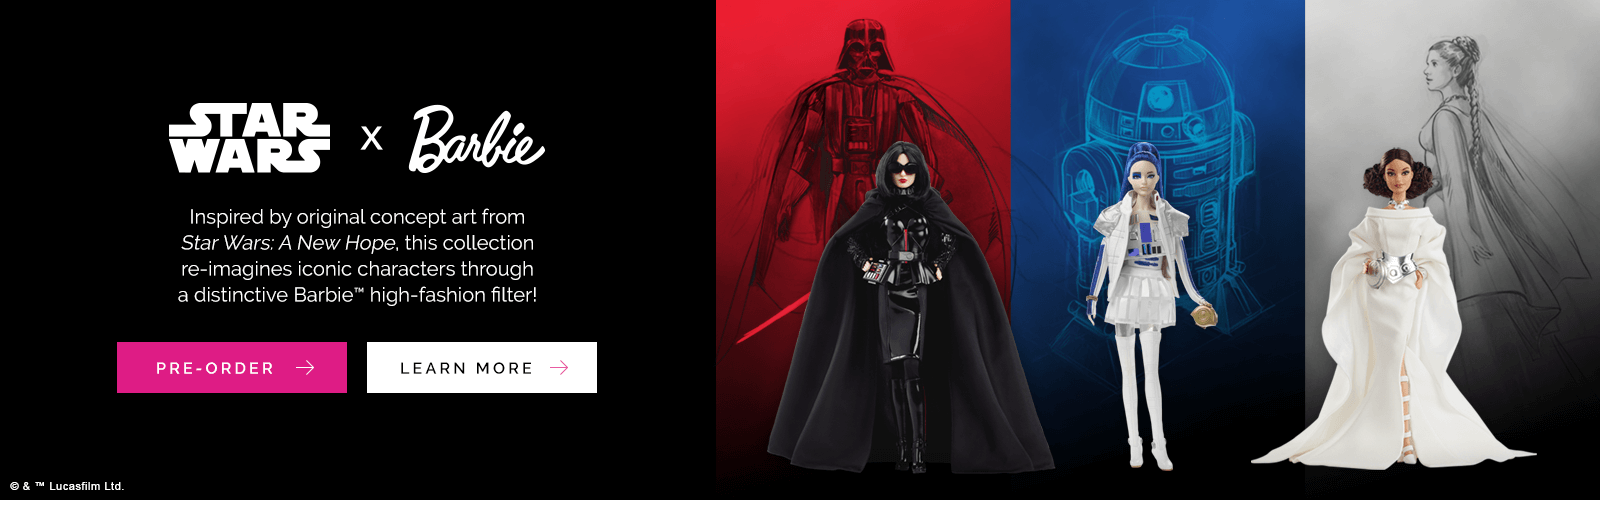 Pre-Order Star Wars x Barbie Dolls